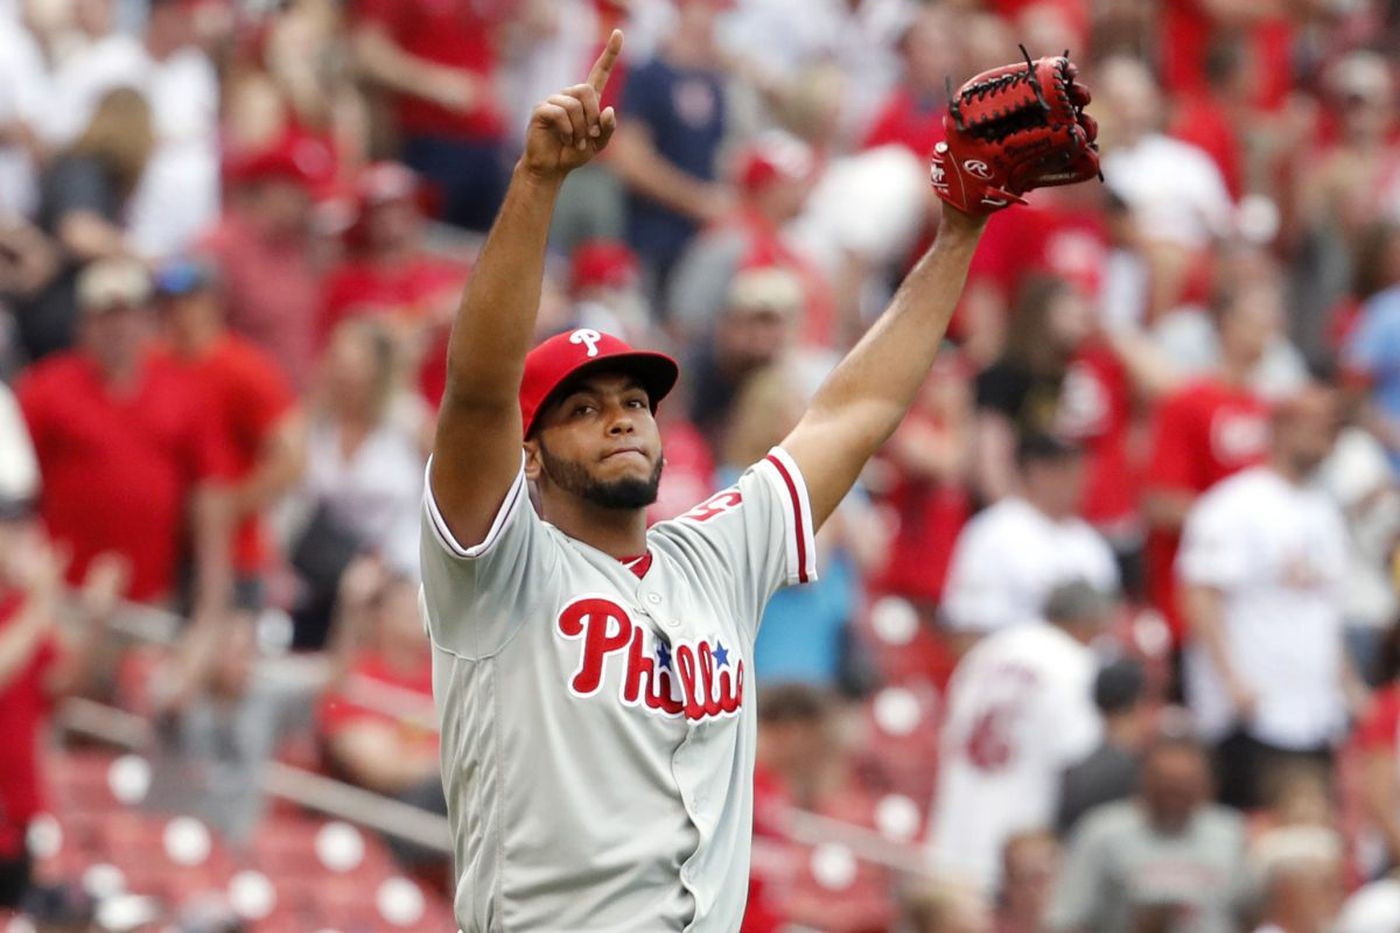 Phillies think Seranthony Dominguez is special